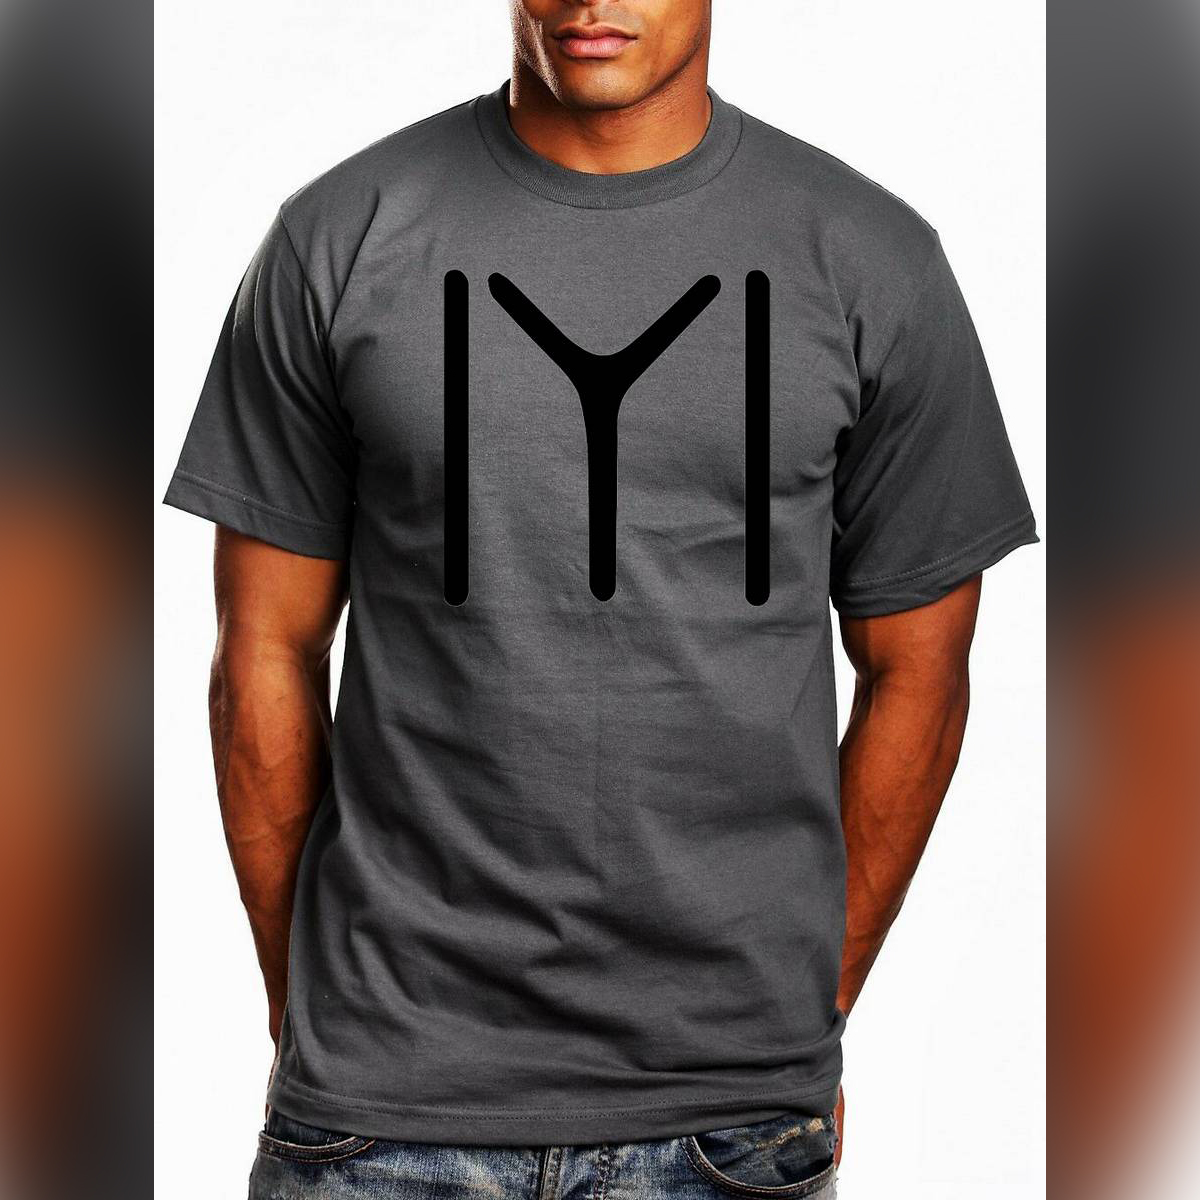 Kayi Tribe Round Neck T shirt for mens